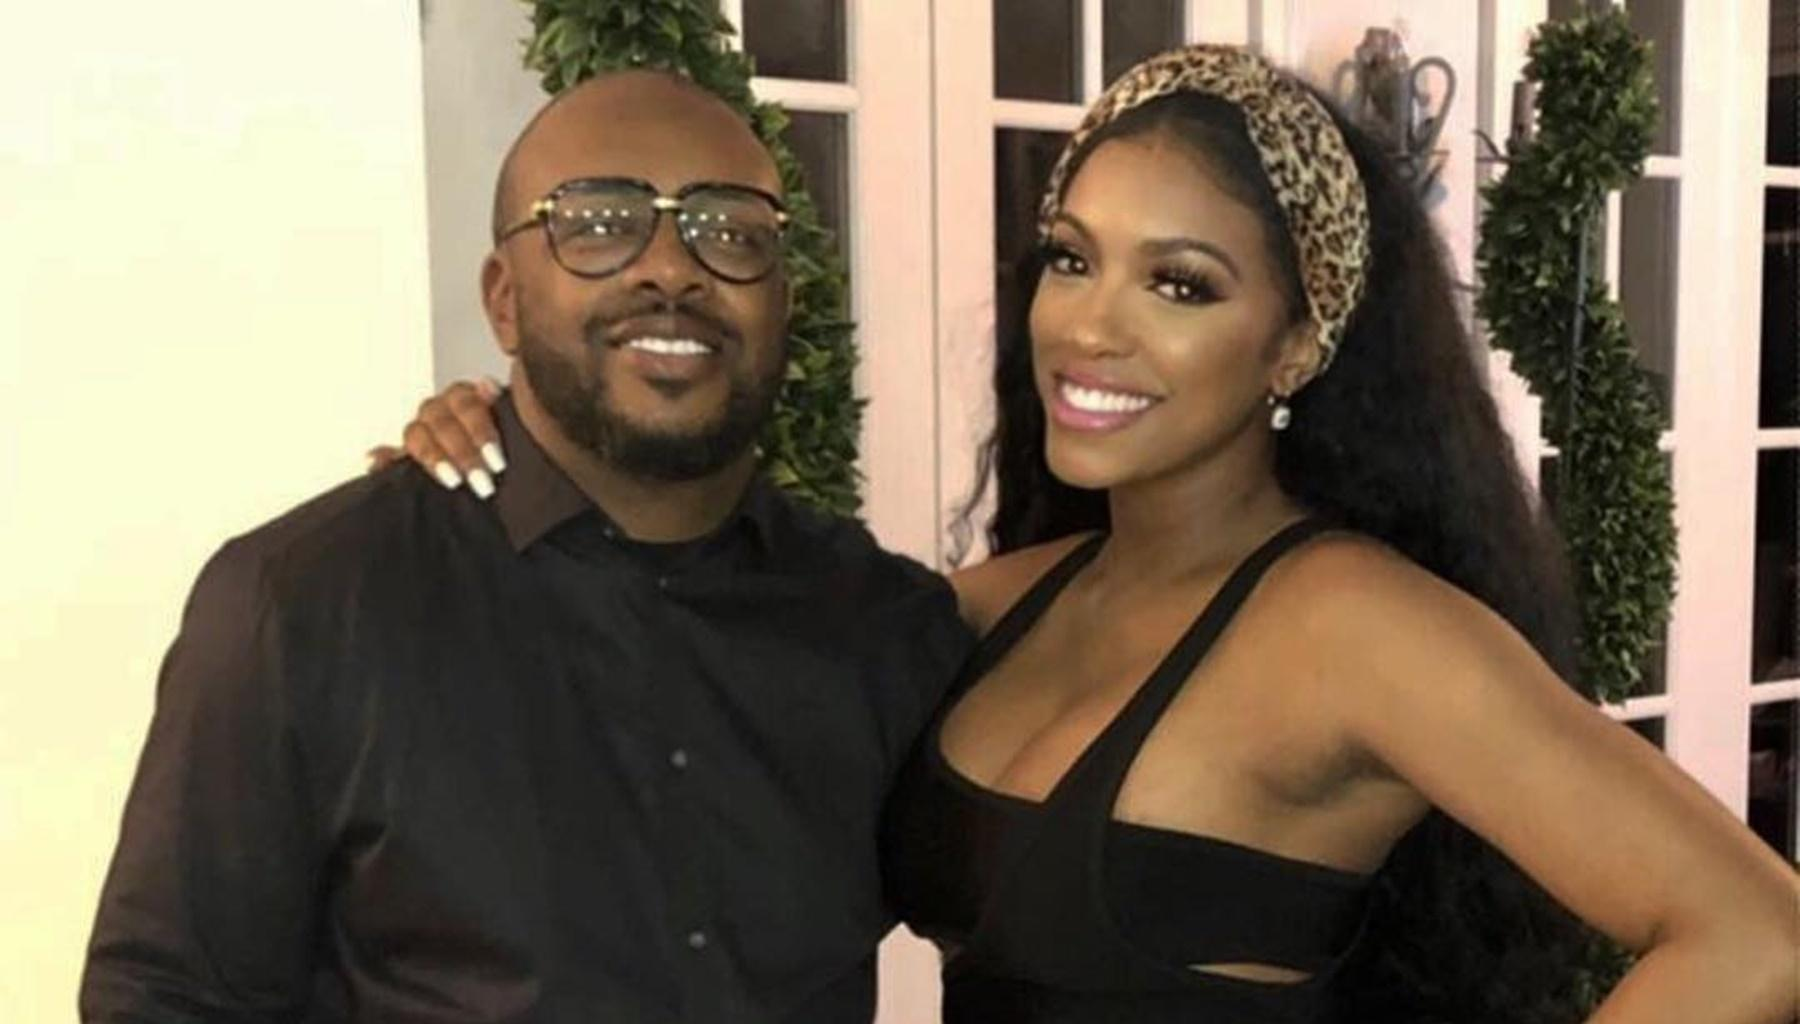 Porsha Williams Flaunts Postpartum Body While On Date With Dennis McKinley Amid Rumors She Is Already Thinking About Baby Number 2